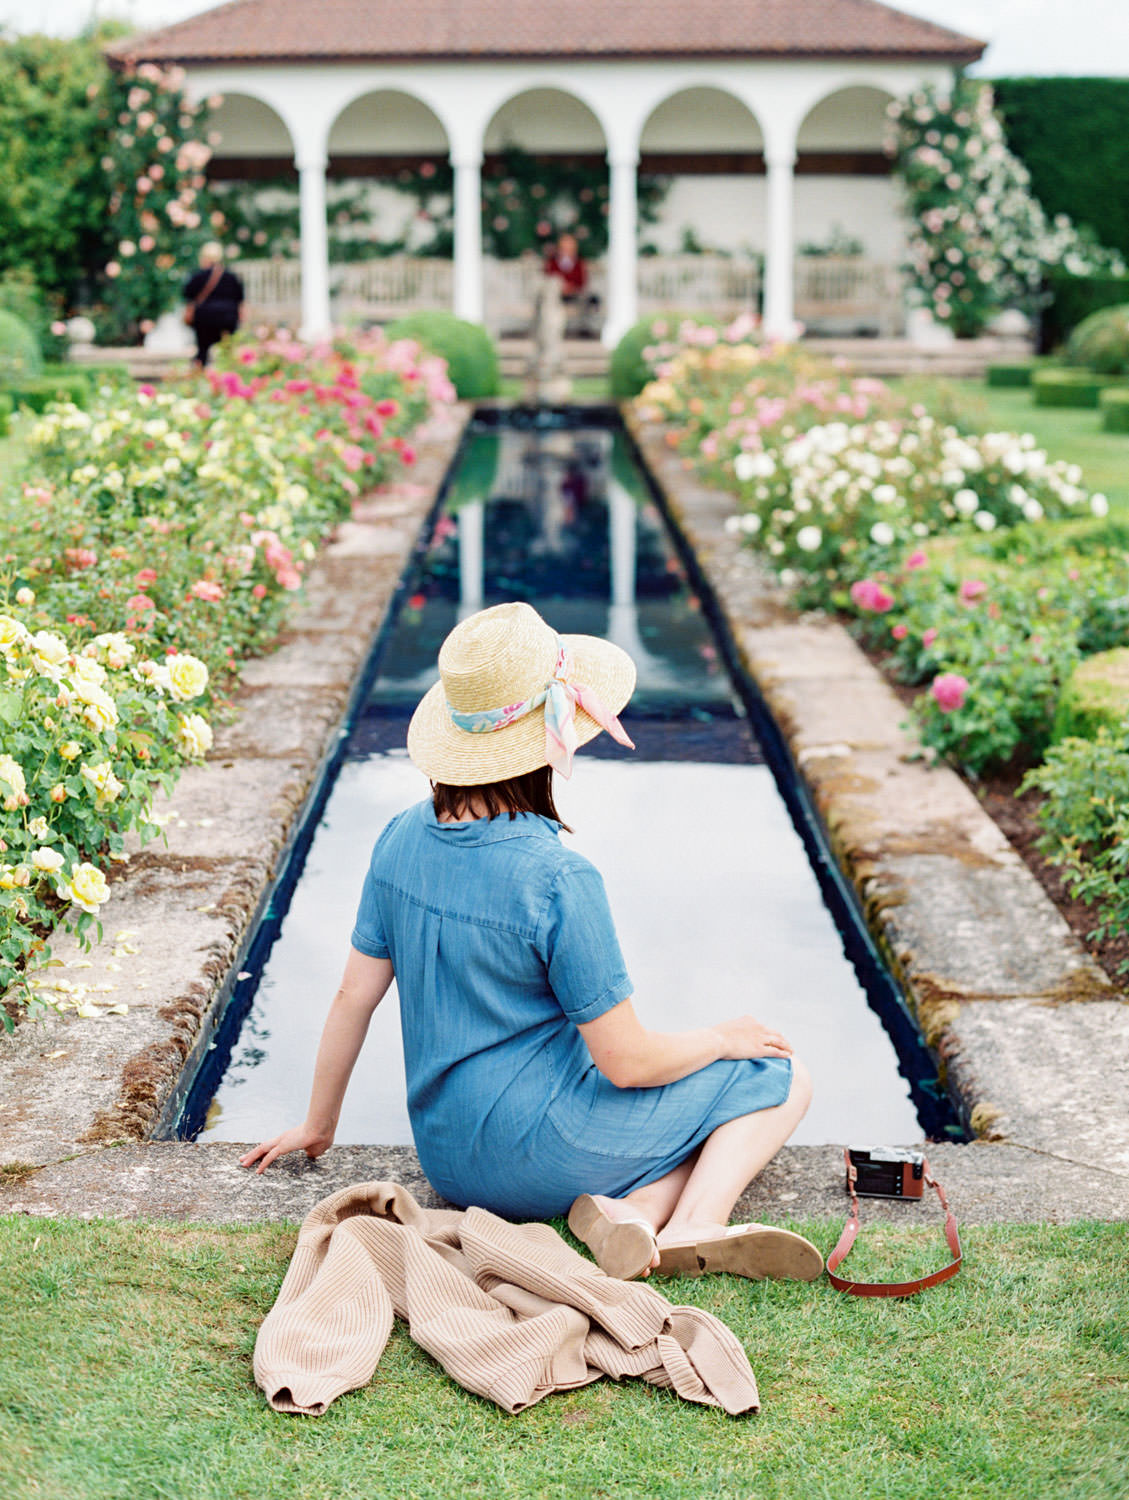 Woman sitting by the fountain at Renaissance garden at David Austin Roses in England. Film by Cavin Elizabeth on the Flutter Mag Retreat